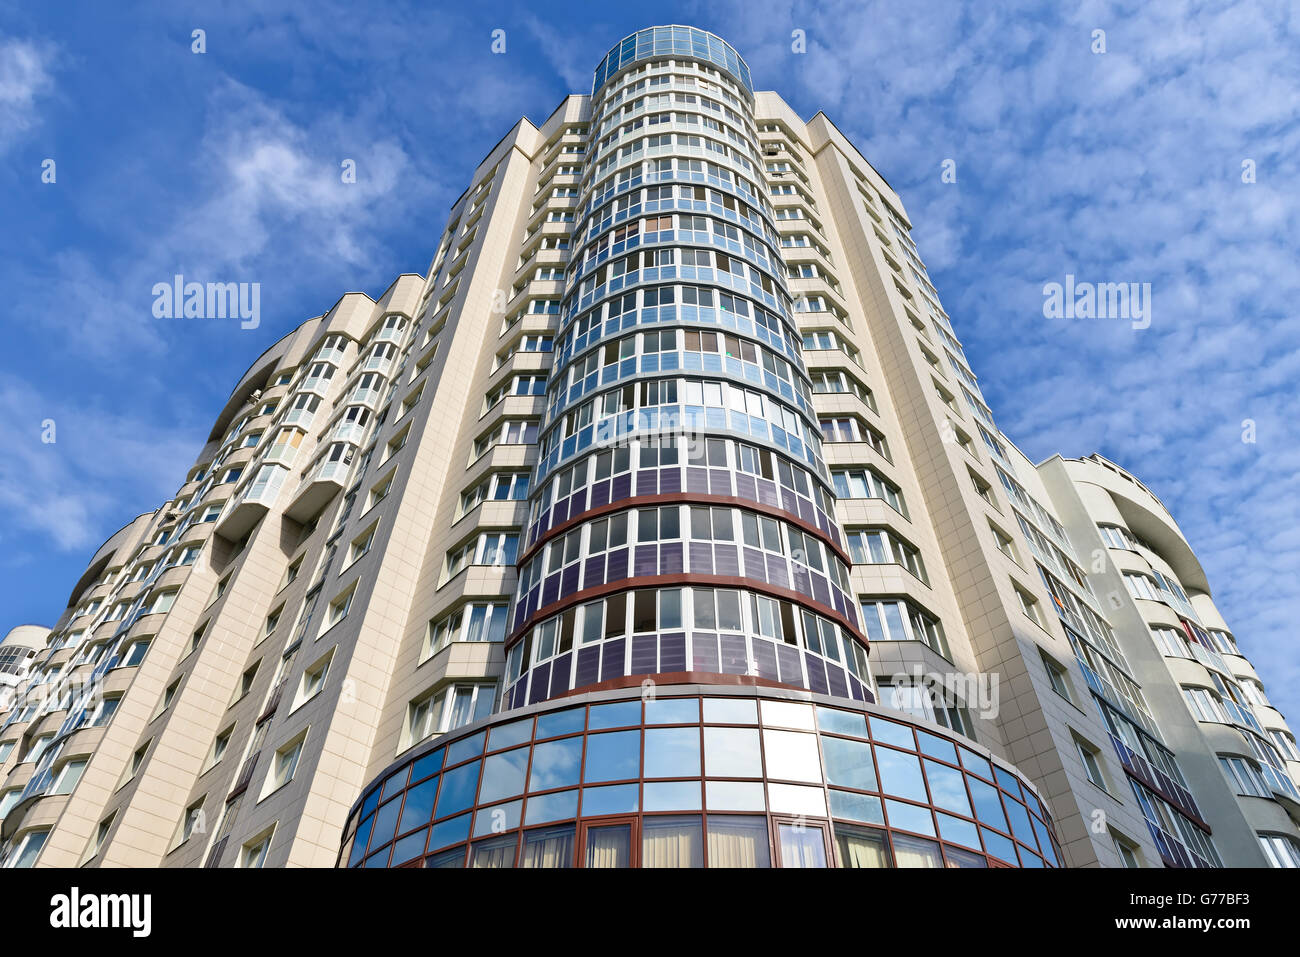 Condominium or apartment building with modern architecture in the city downtown - Stock Image